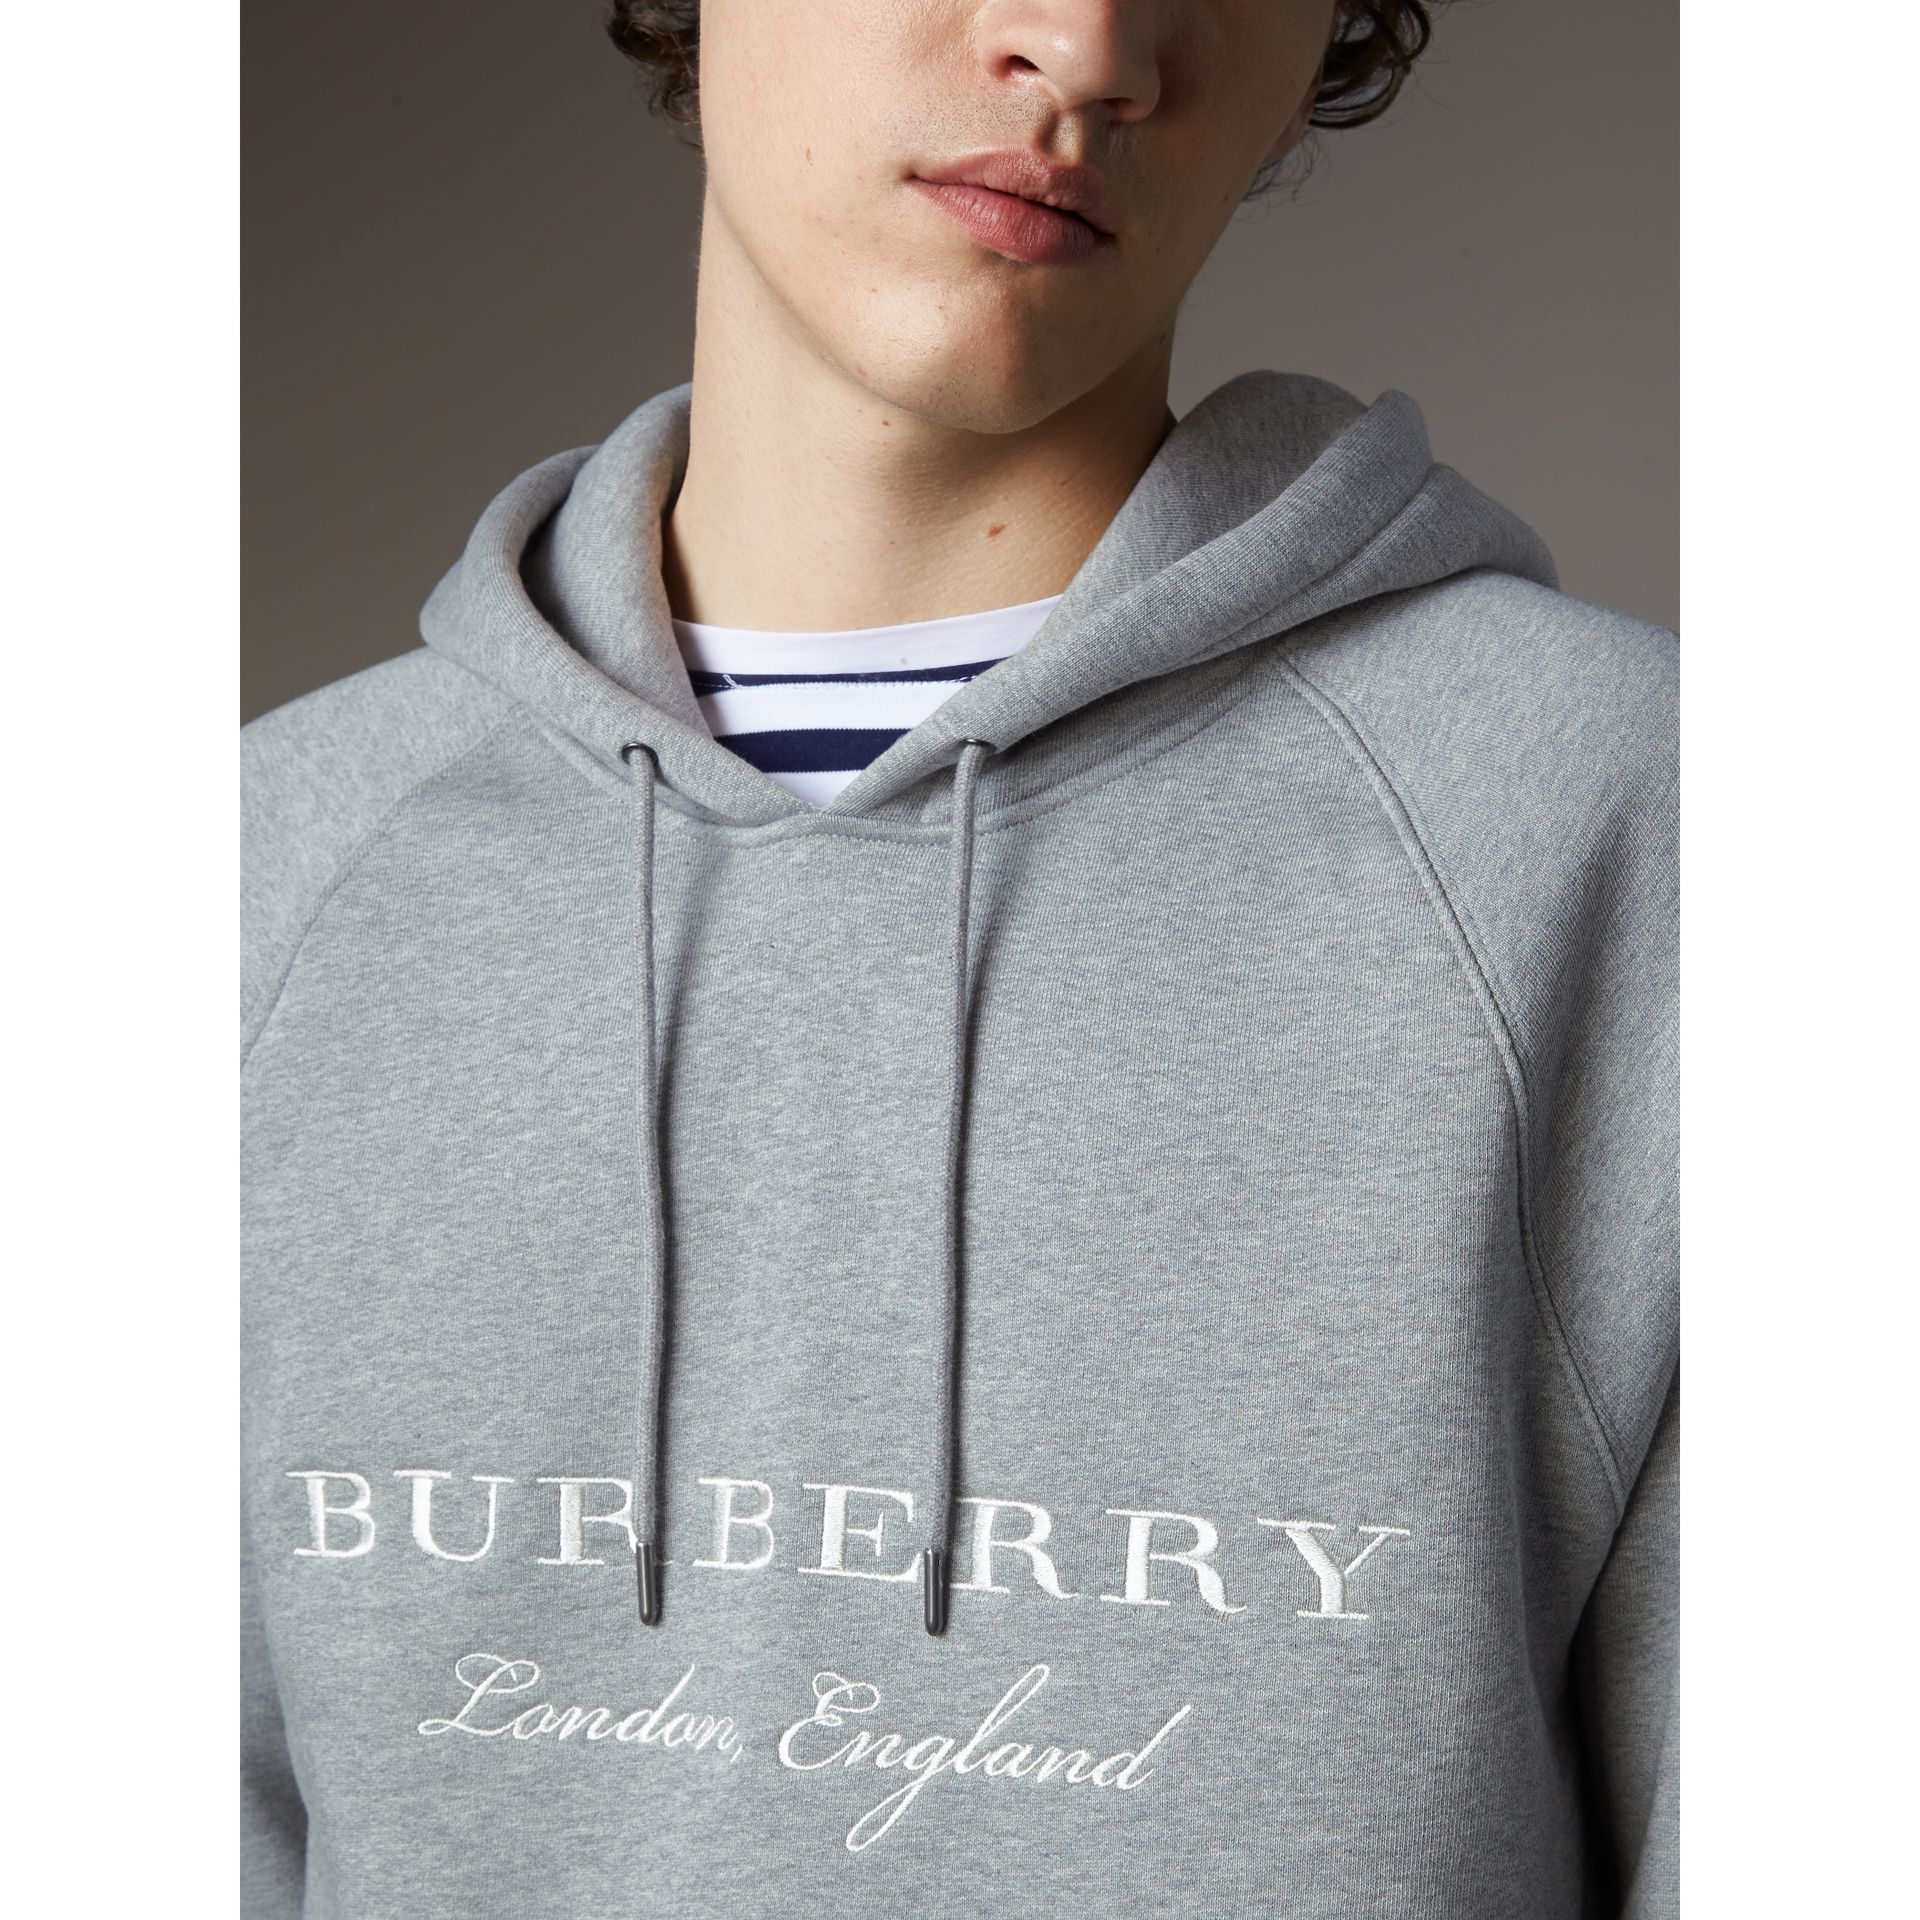 Sweat-shirt brodé à capuche (Camaïeu De Gris) - Homme | Burberry - photo de la galerie 4